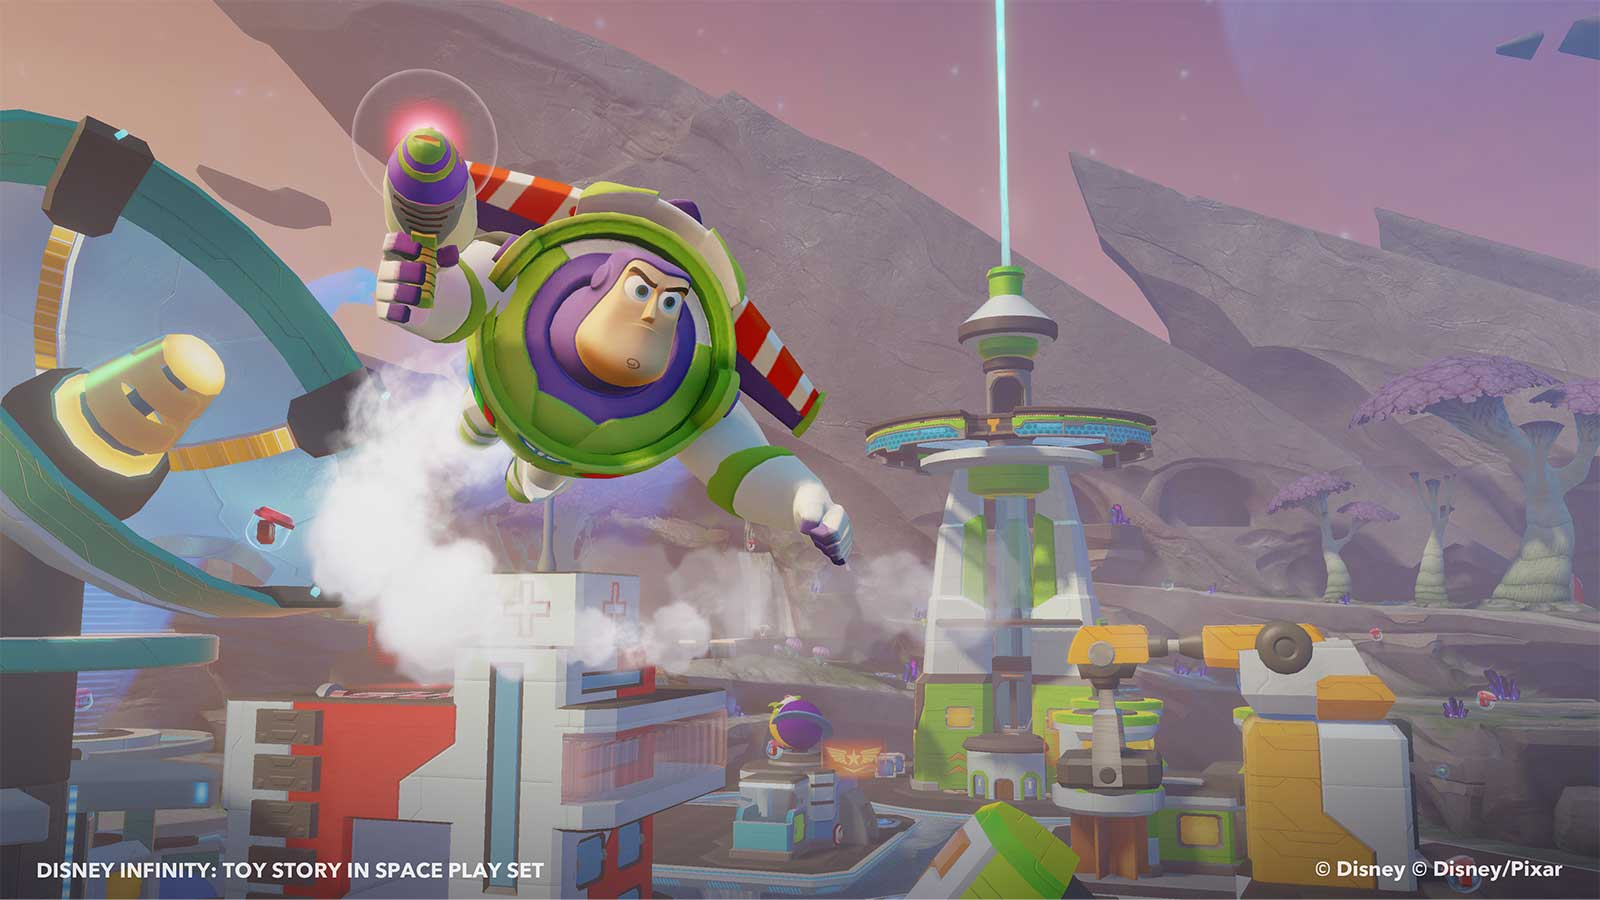 Disney Infinity: Toy Story in Space